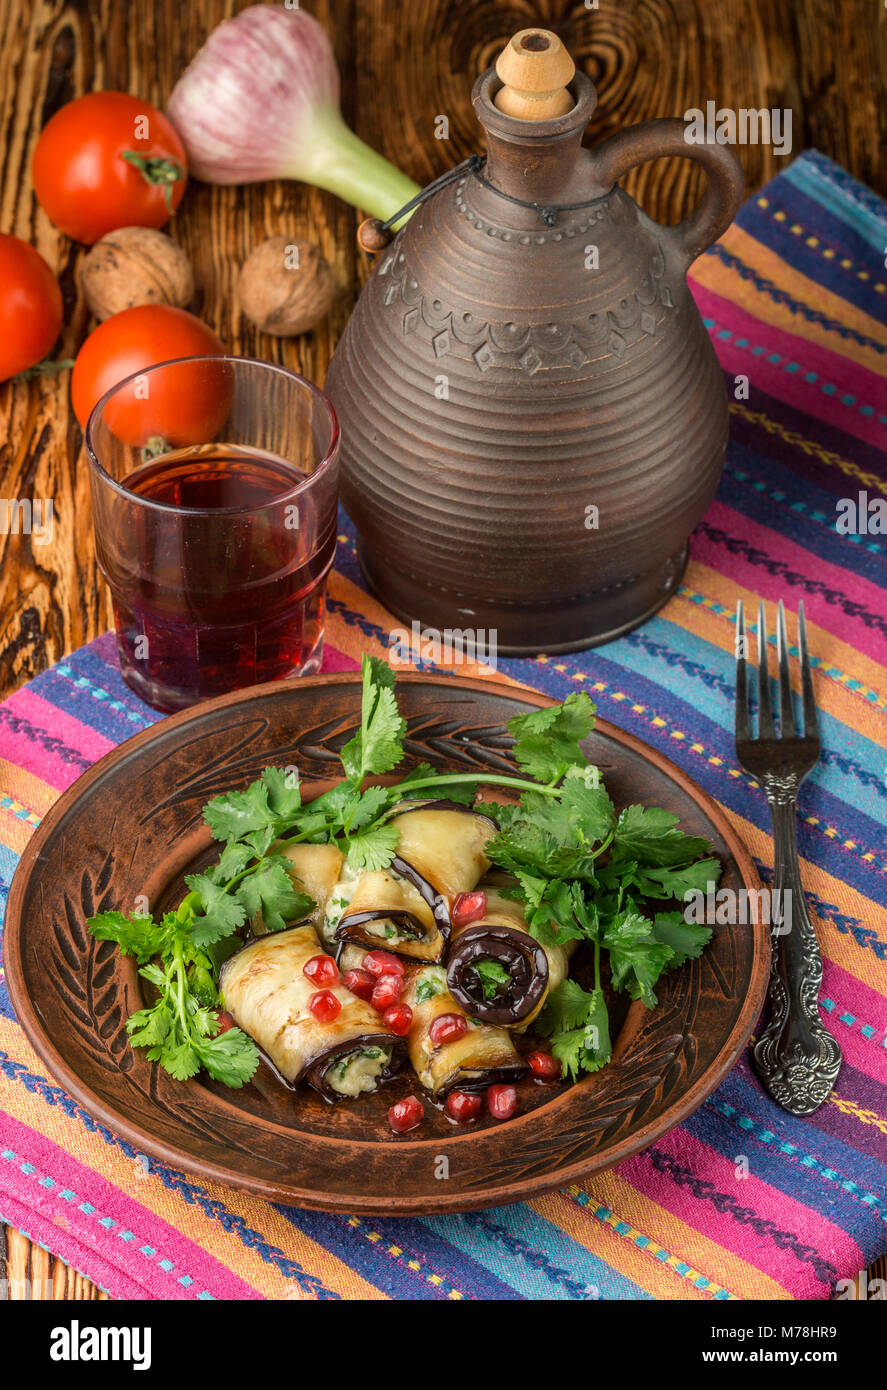 Rolls of fried eggplant with cheese, garlic, cilantro and pomegranate seeds. Gourmet appetizer. Selective focus - Stock Image